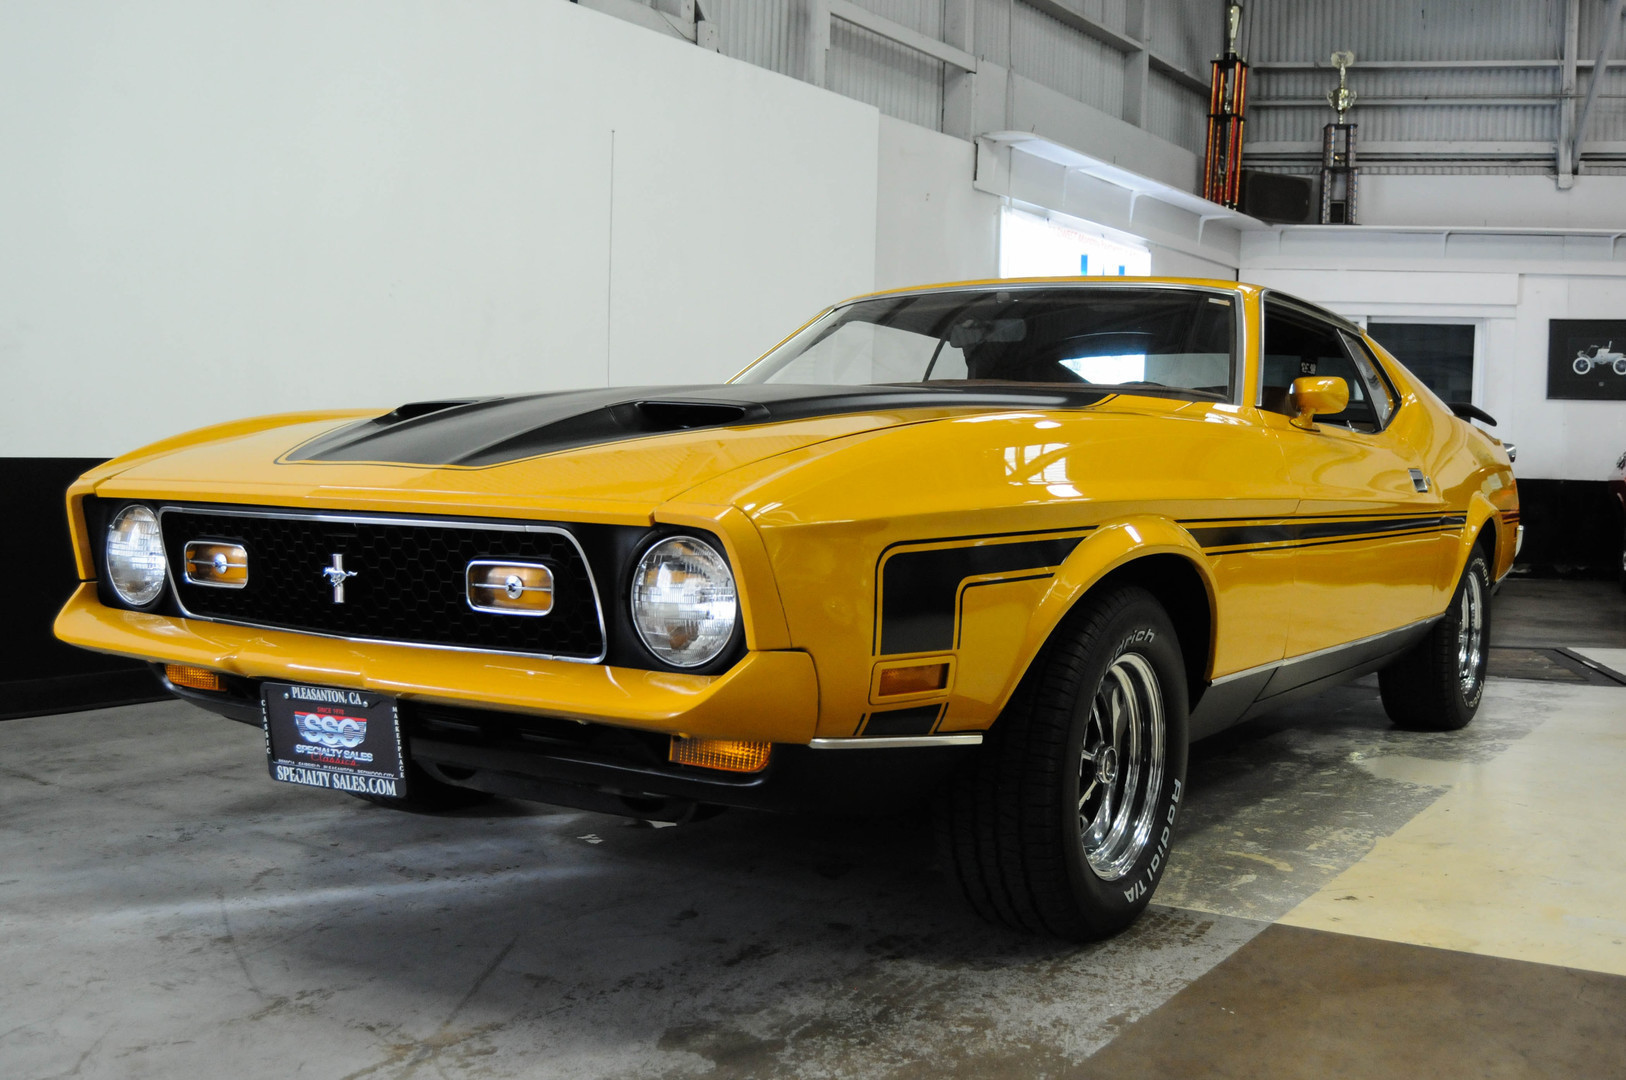 1971 ford mustang mach 1 2 door fastback sold